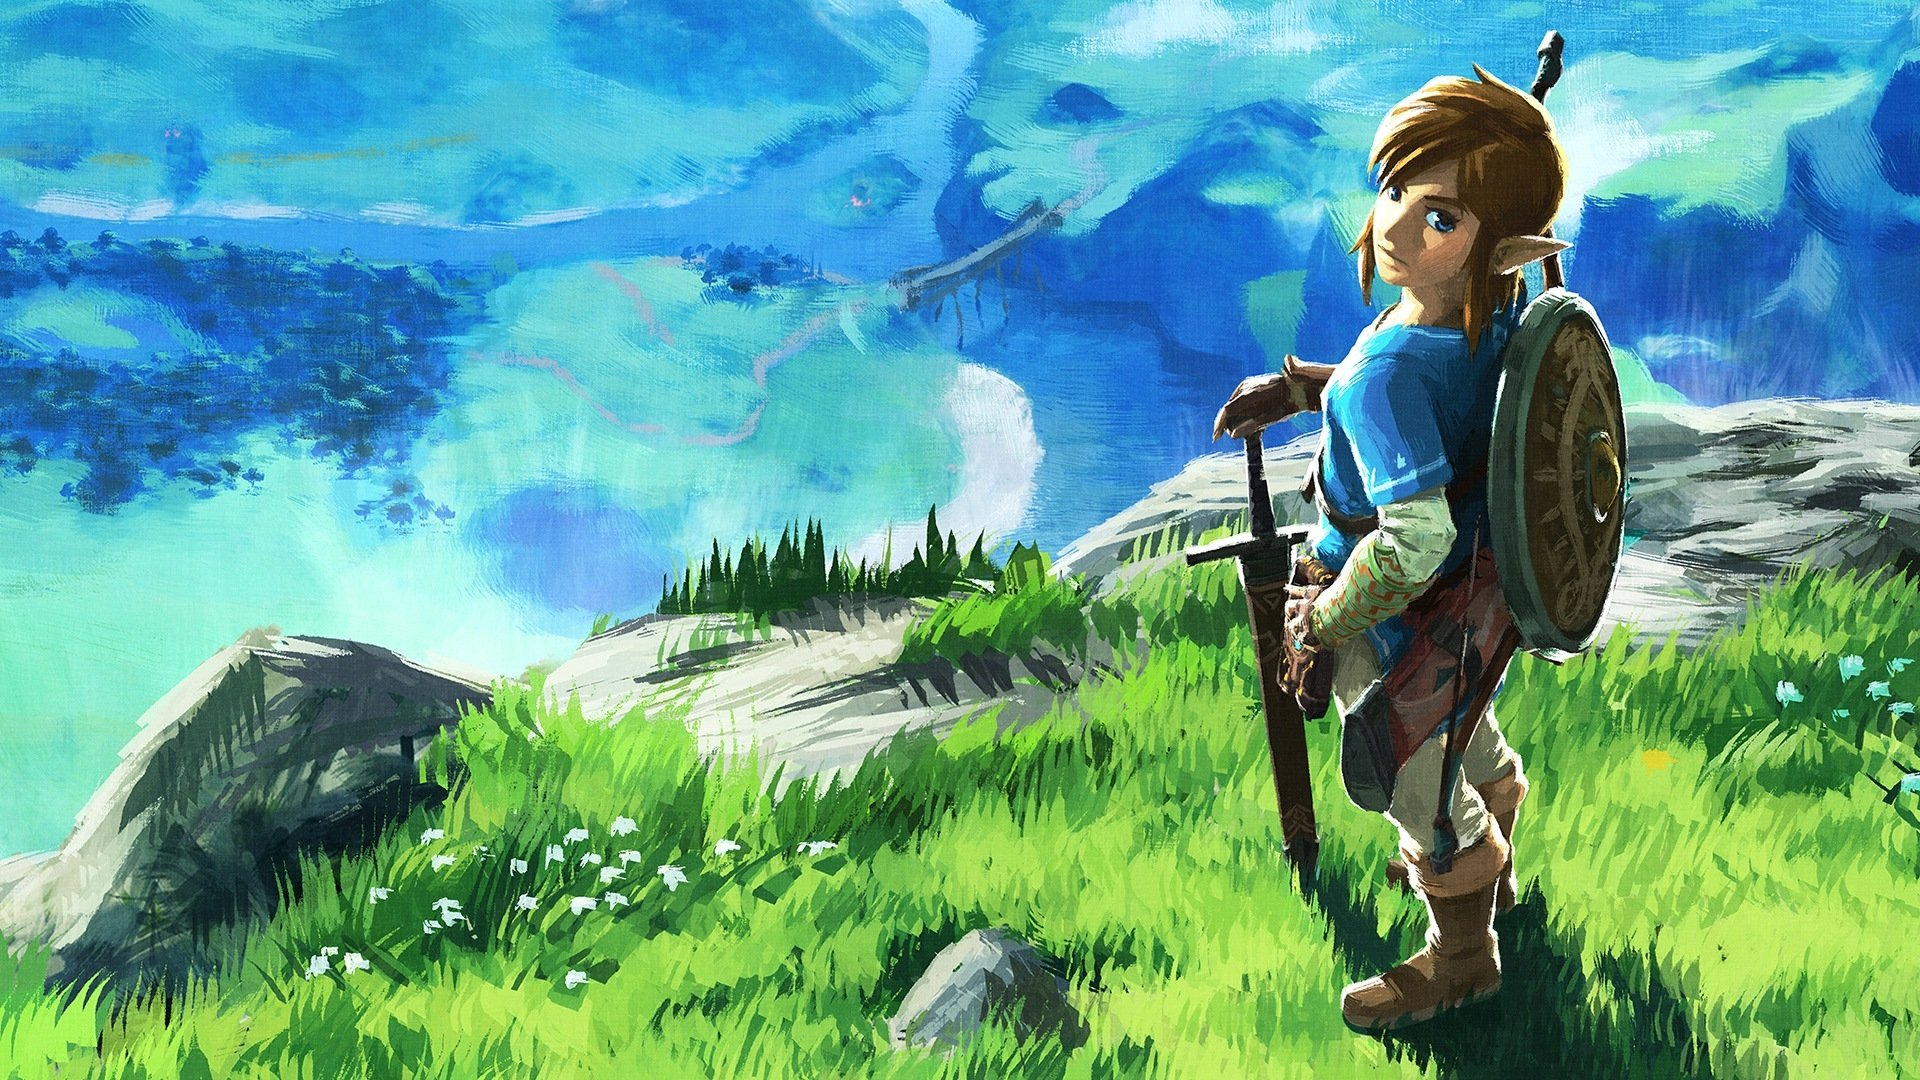 Free Download Zelda Breath Of The Wild Full Hd Wallpaper And